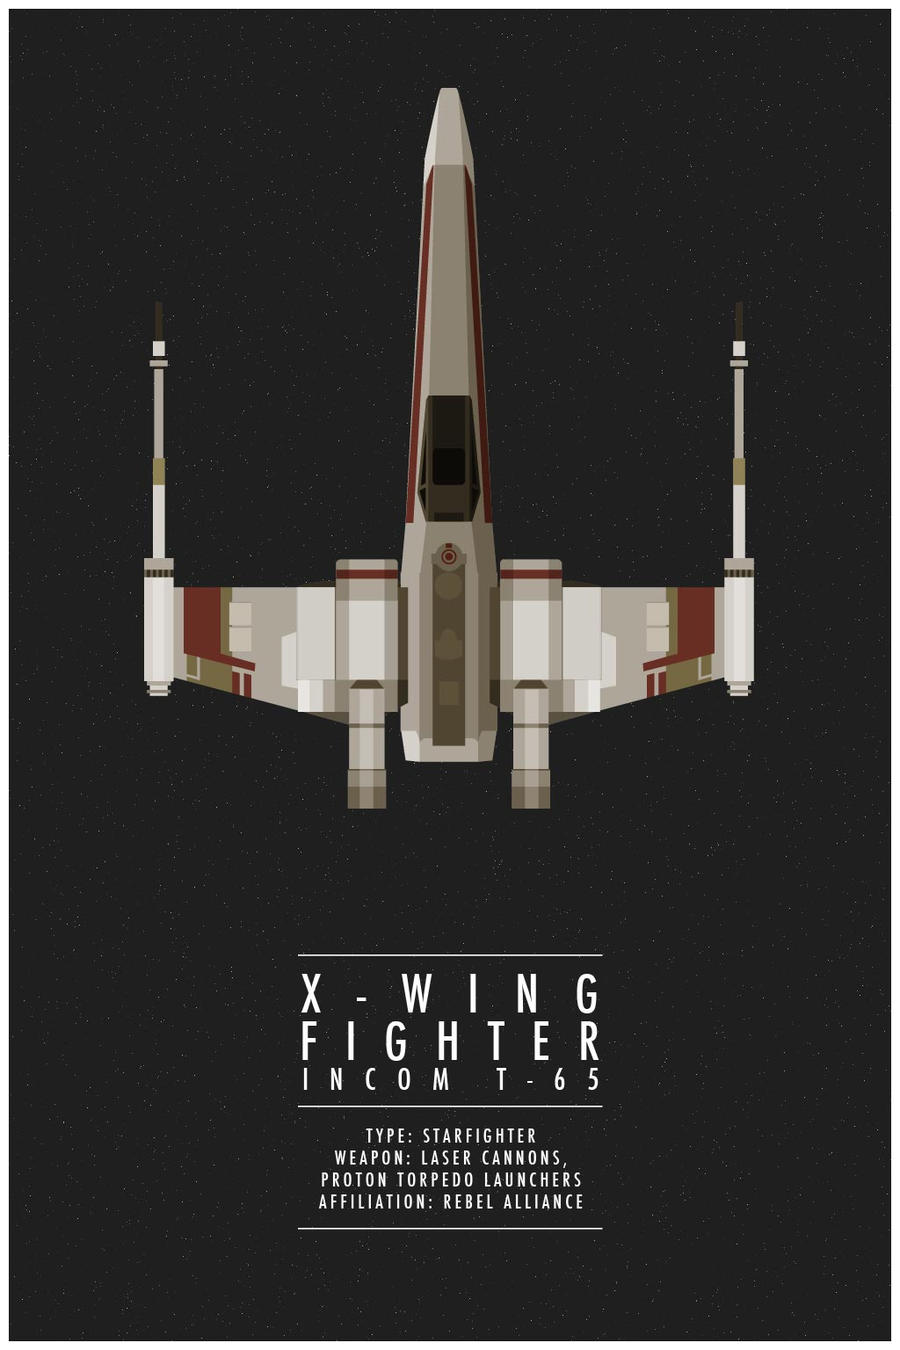 x-wing fighter by weaponix on deviantart